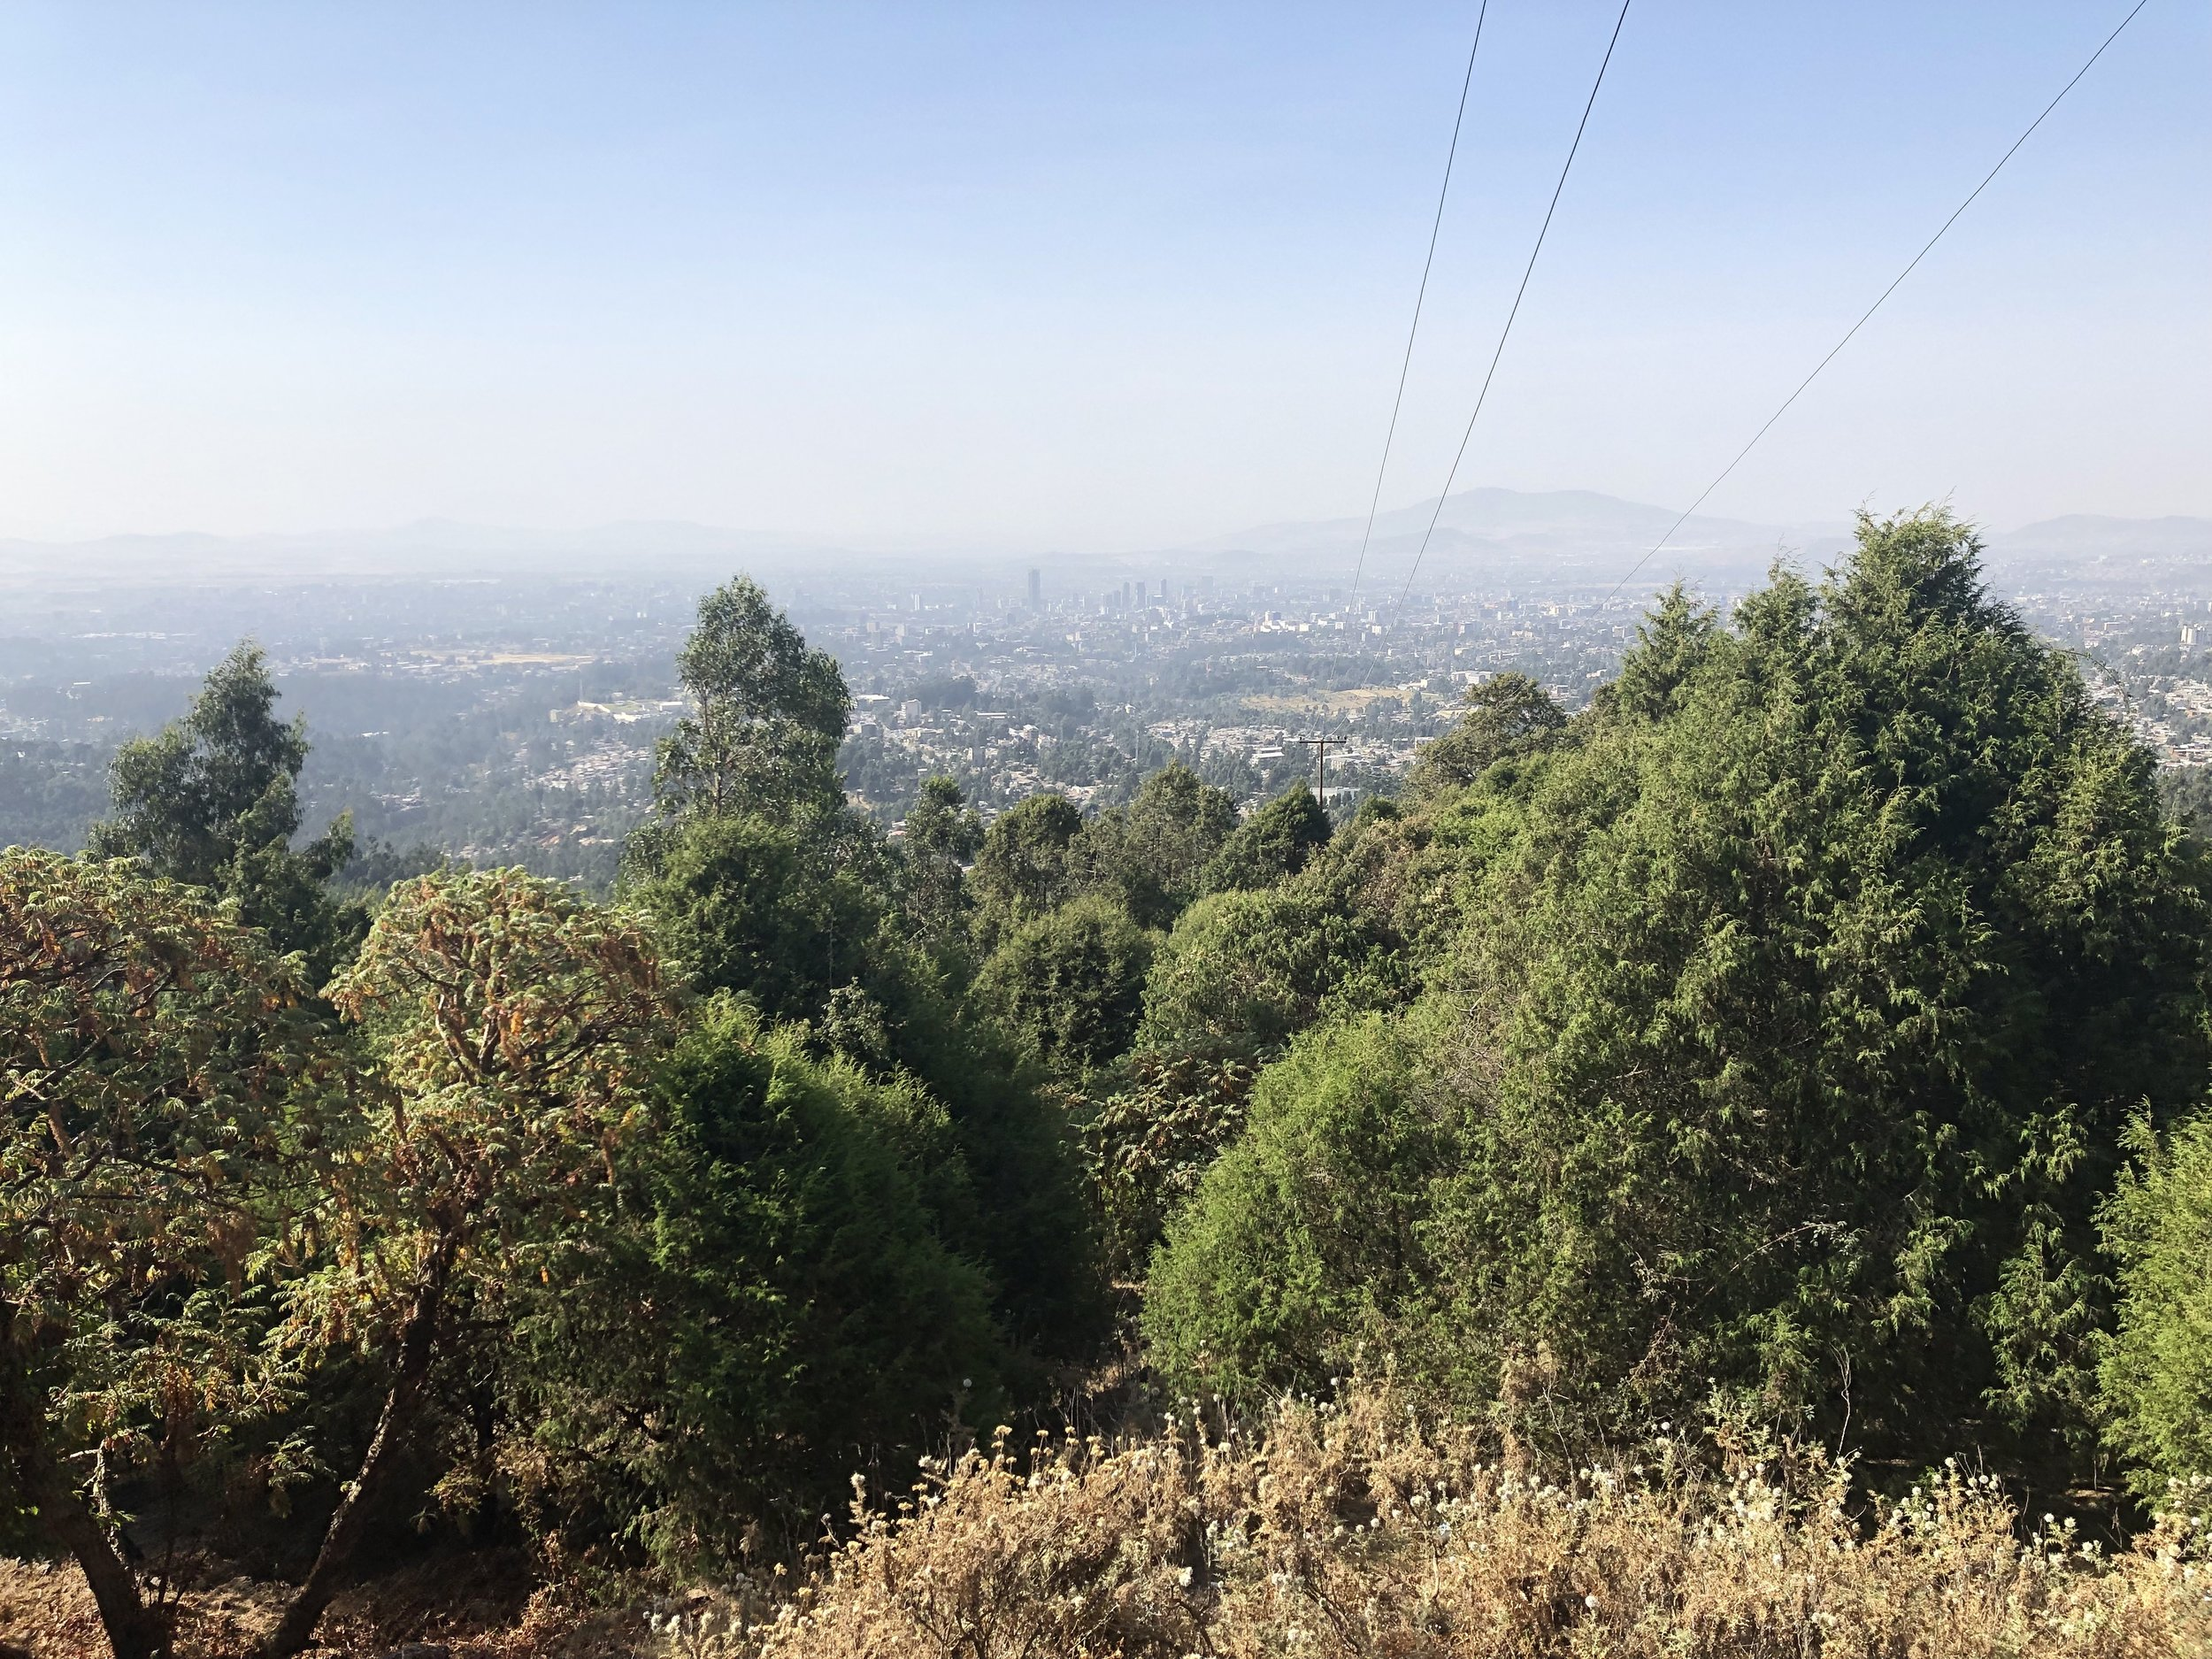 Looking toward Addis Ababa from the road up into the Entoto Mountains.